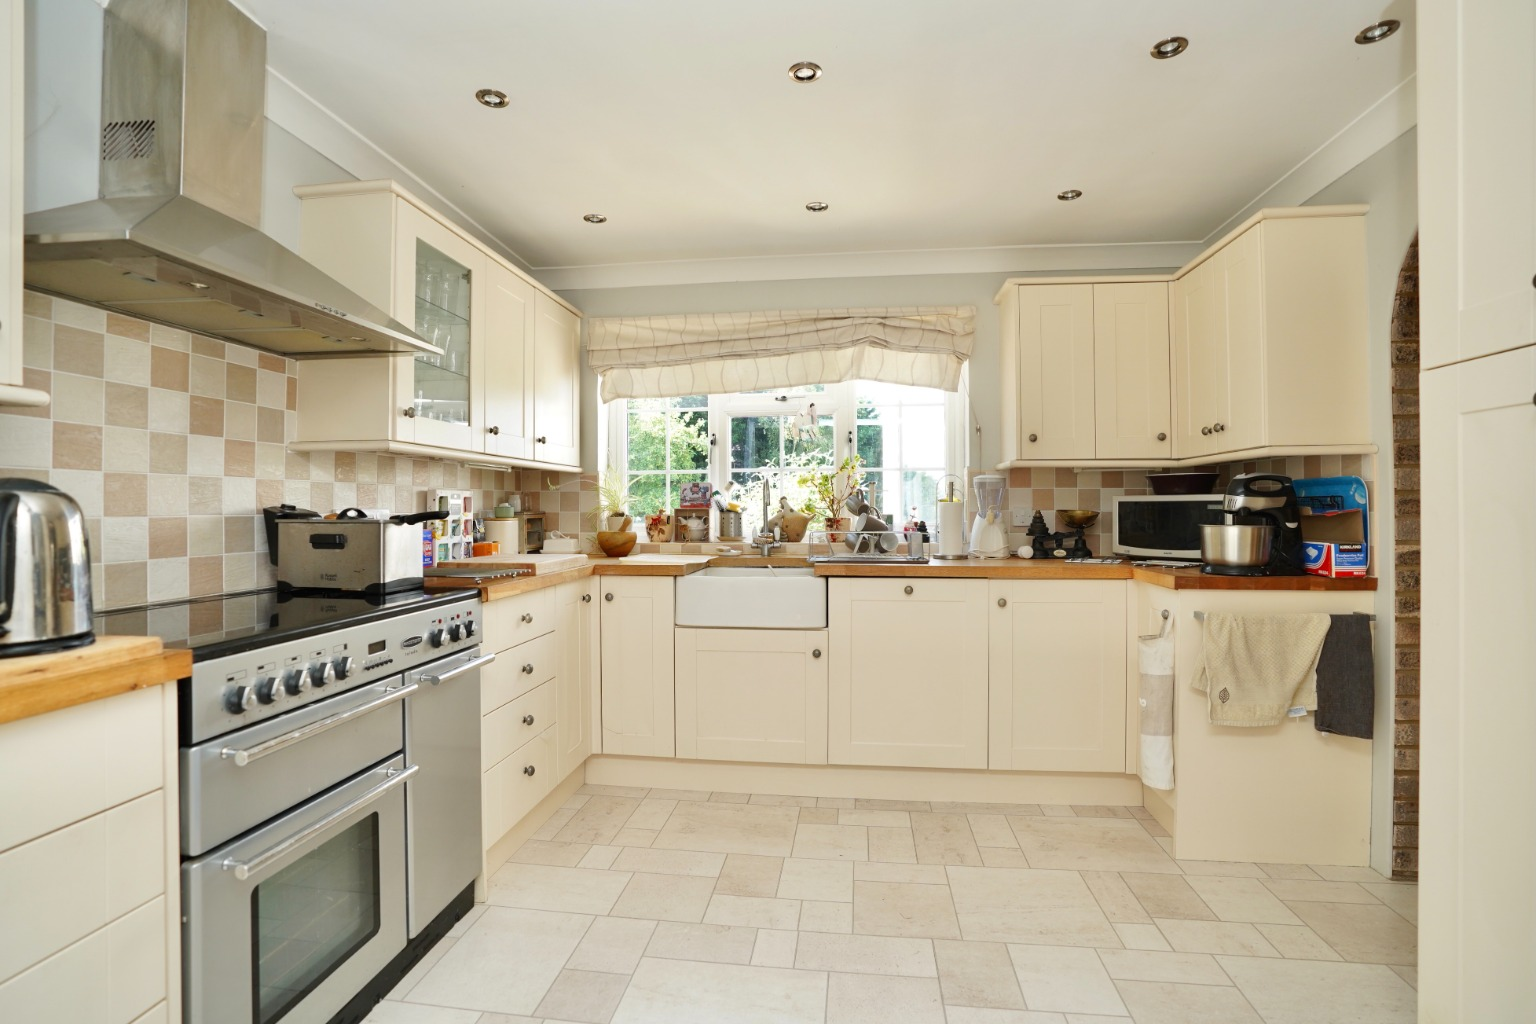 4 bed detached house for sale in Yeomans Close, Huntingdon  - Property Image 6